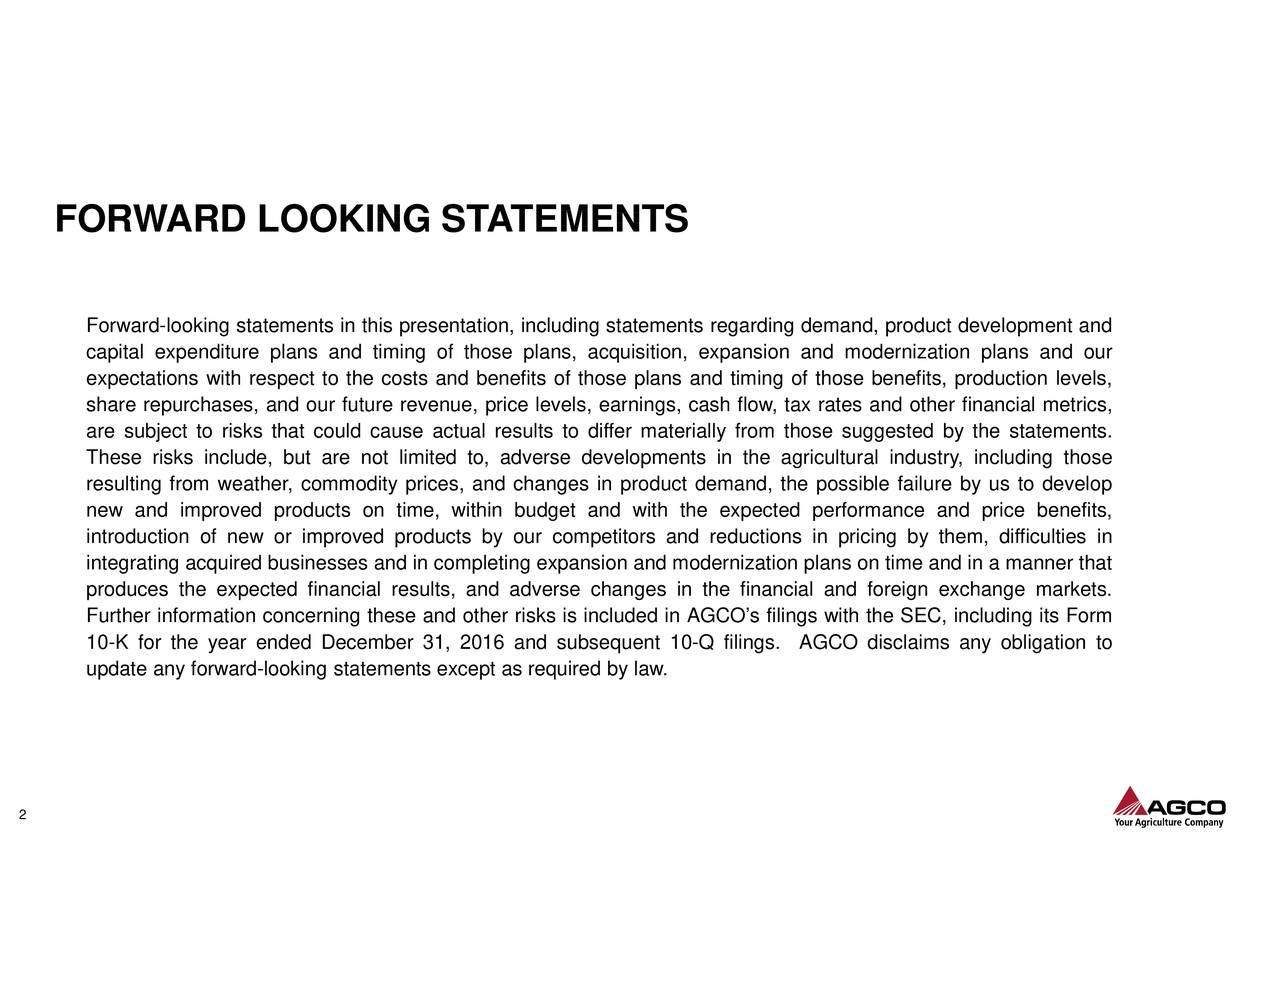 Forward-looking statements in this presentation, including statements regarding demand, product development and capital expenditure plans and timing of those plans, acquisition, expansion and modernization plans and our expectations with respect to the costs and benefits of those plans and timing of those benefits, production levels, share repurchases, and our future revenue, price levels, earnings, cash flow, tax rates and other financial metrics, are subject to risks that could cause actual results to differ materially from those suggested by the statements. These risks include, but are not limited to, adverse developments in the agricultural industry, including those resulting from weather, commodity prices, and changes in product demand, the possible failure by us to develop new and improved products on time, within budget and with the expected performance and price benefits, introduction of new or improved products by our competitors and reductions in pricing by them, difficulties in integrating acquired businesses and in completing expansion and modernization plans on time and in a manner that produces the expected financial results, and adverse changes in the financial and foreign exchange markets. Further information concerning these and other risks is included in AGCO's filings with the SEC, including its Form 10-K for the year ended December 31, 2016 and subsequent 10-Q filings. AGCO disclaims any obligation to update any forward-looking statements except as required by law. 2